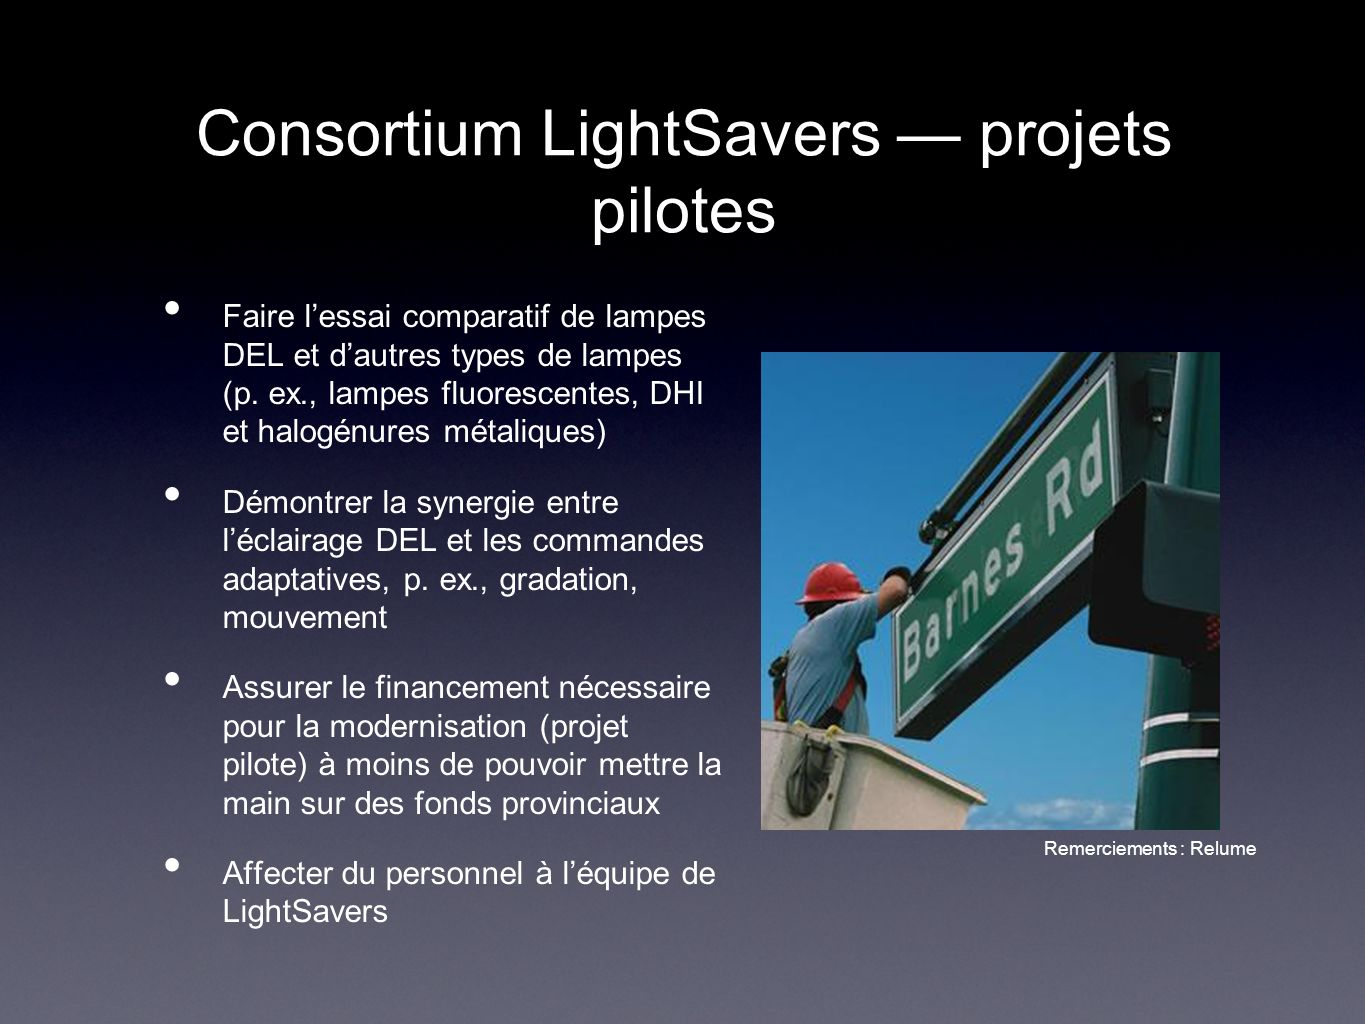 Consortium LightSavers — projets pilotes